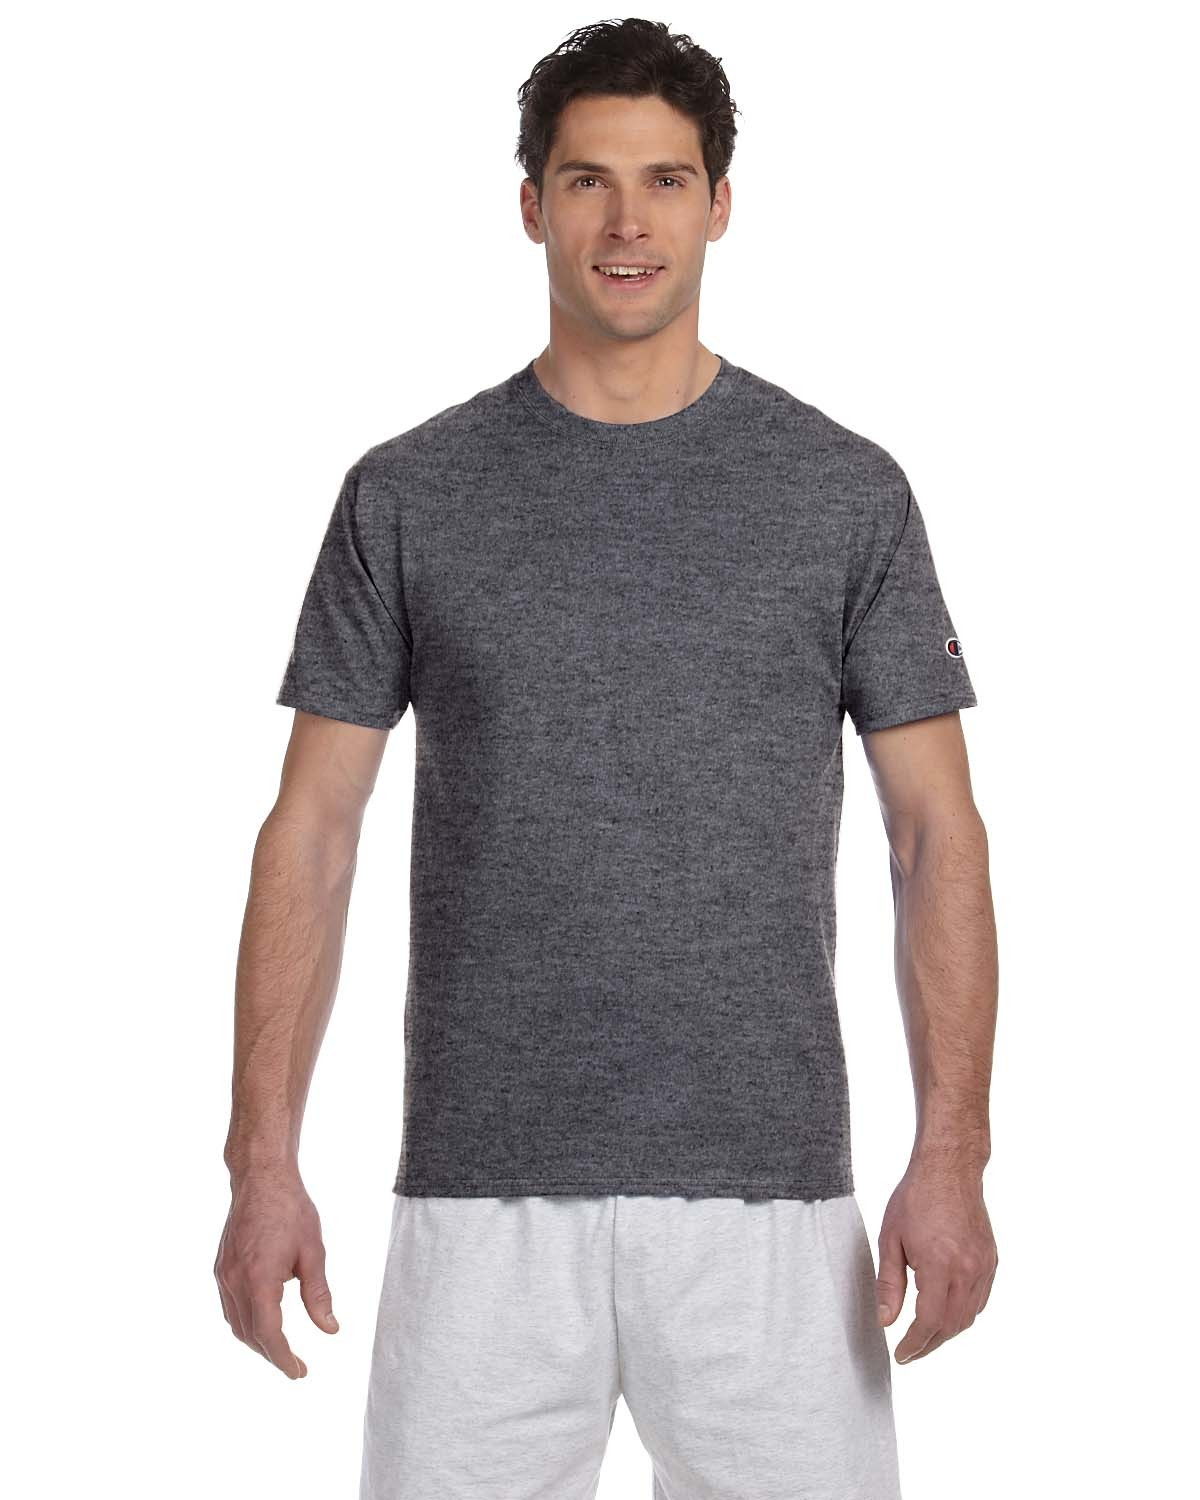 T525C Champion CHARCOAL HEATHER